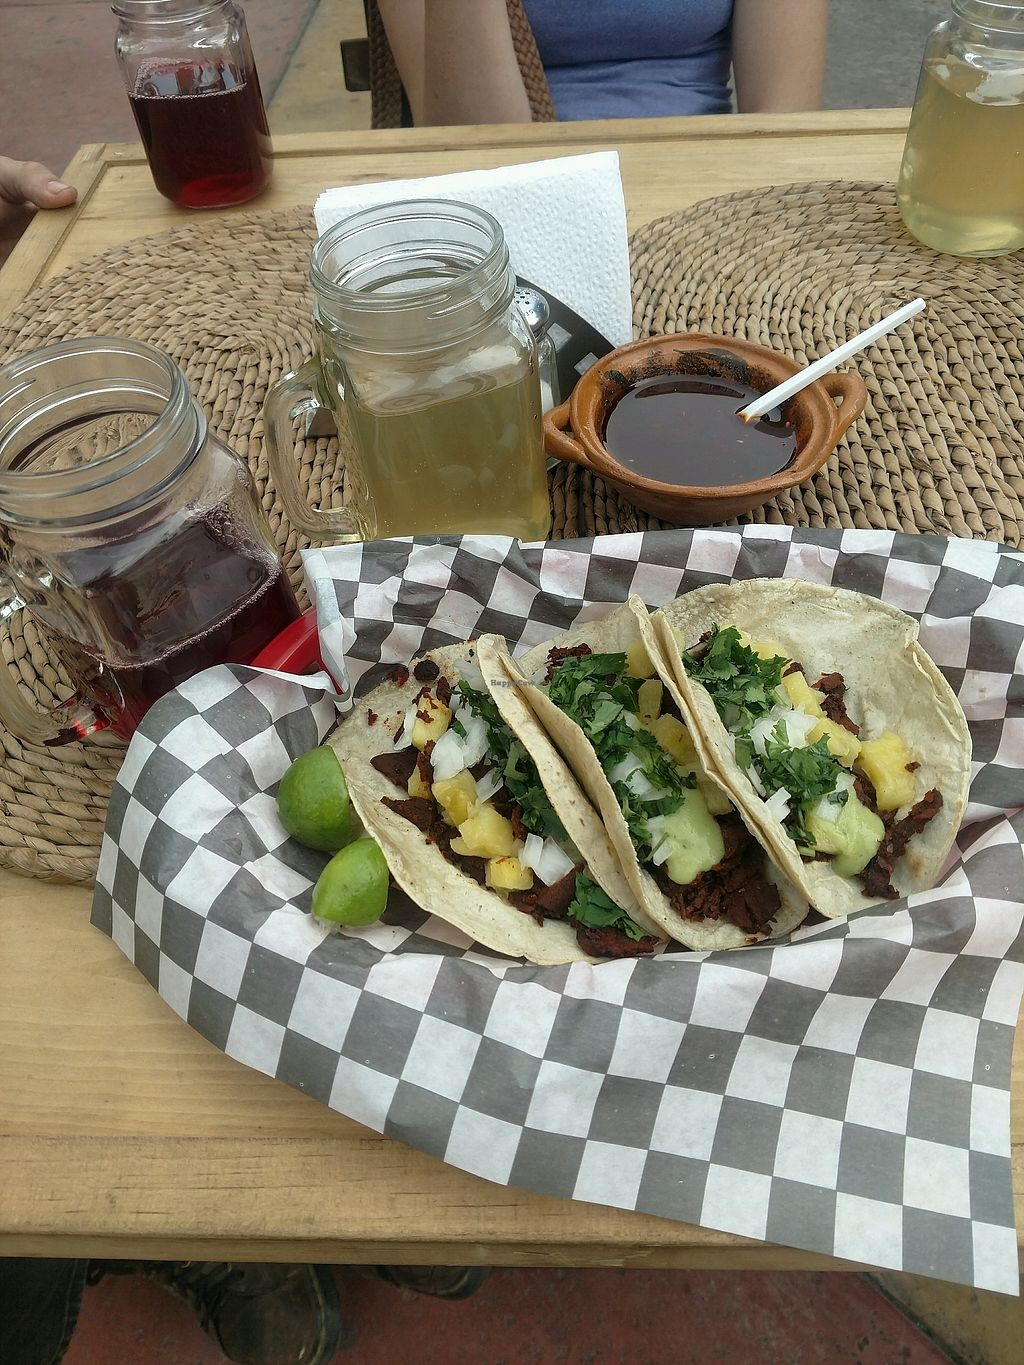 """Photo of V Hopes  by <a href=""""/members/profile/PaganMistress"""">PaganMistress</a> <br/>Al Pastor tacos y agua frescas <br/> January 8, 2018  - <a href='/contact/abuse/image/107402/344225'>Report</a>"""